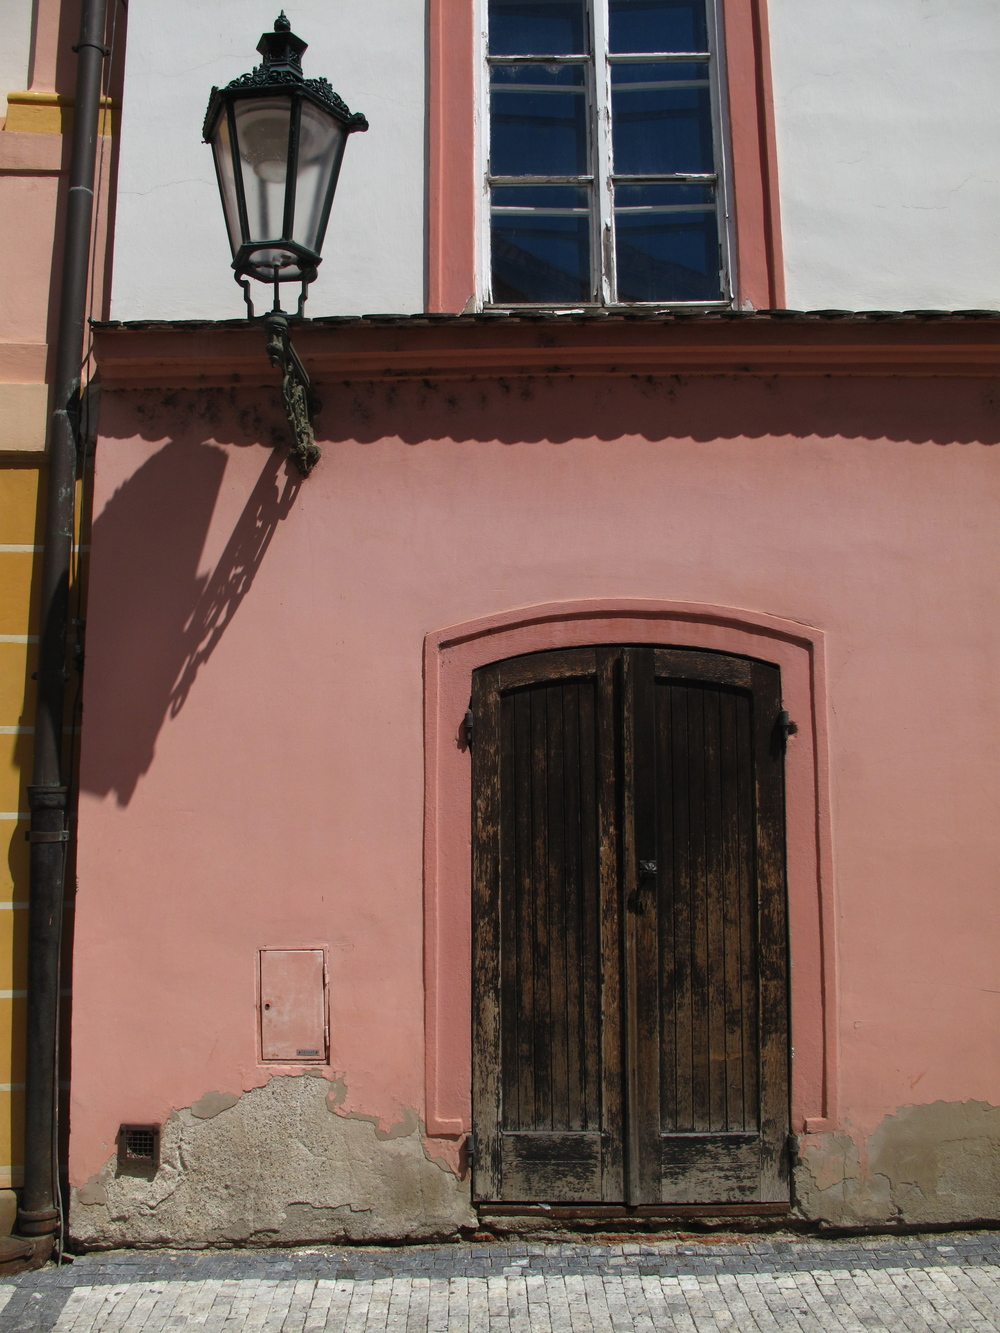 Textures of Prague, old houses, street lamps, and pink walls.